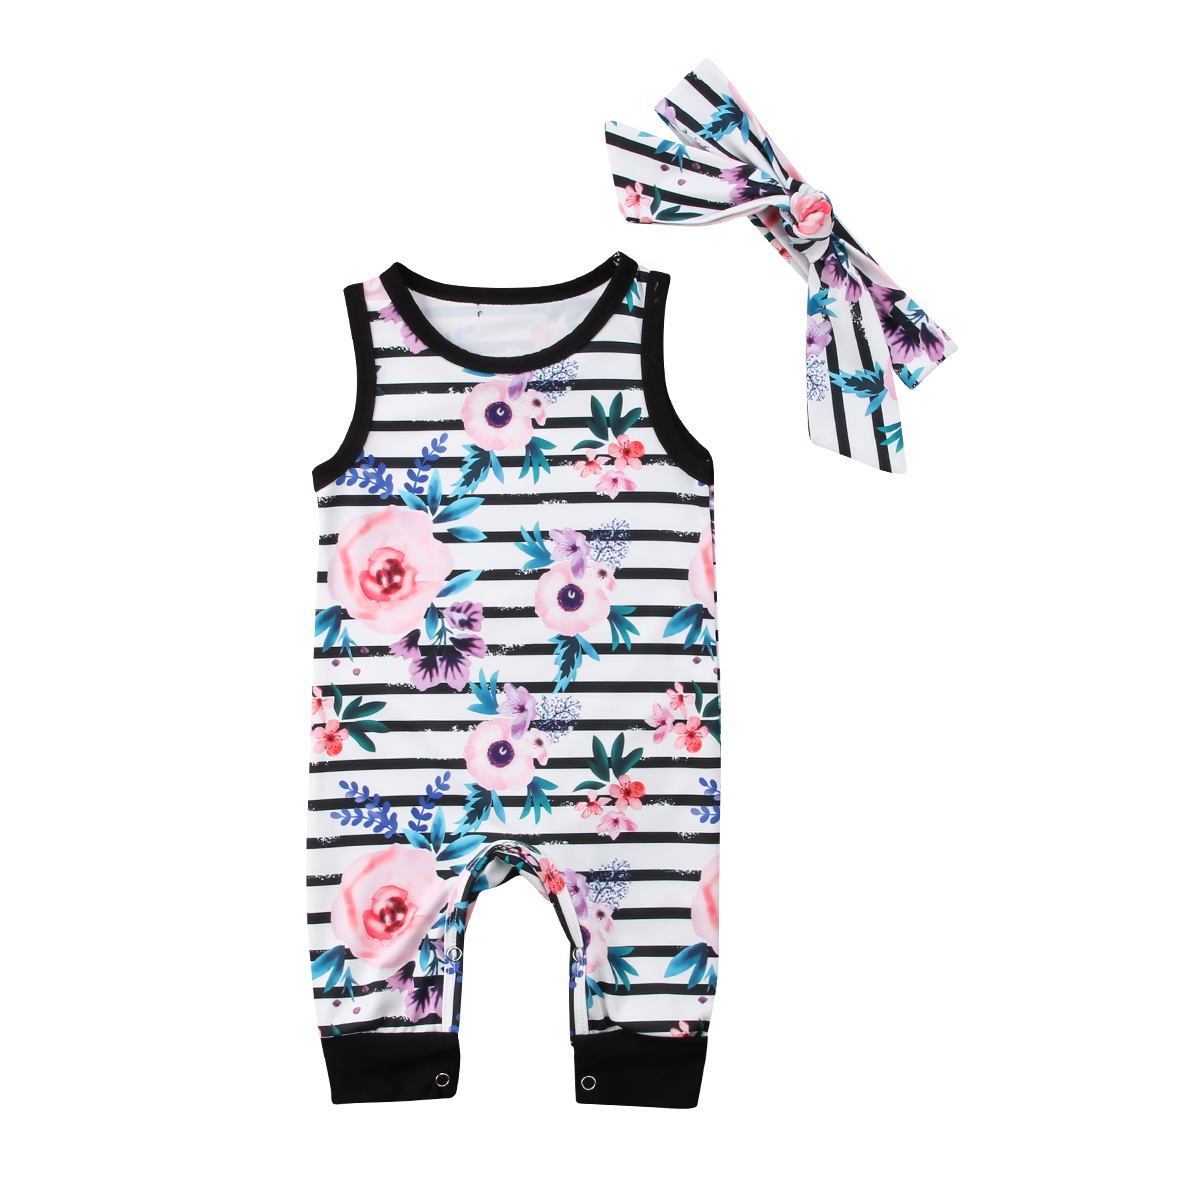 2Pcs Bodysuit Newborn Kids Baby Girls Flower Sleeveless Cotton Bodysuit Jumpsuit Headband Outfits Sunsuit